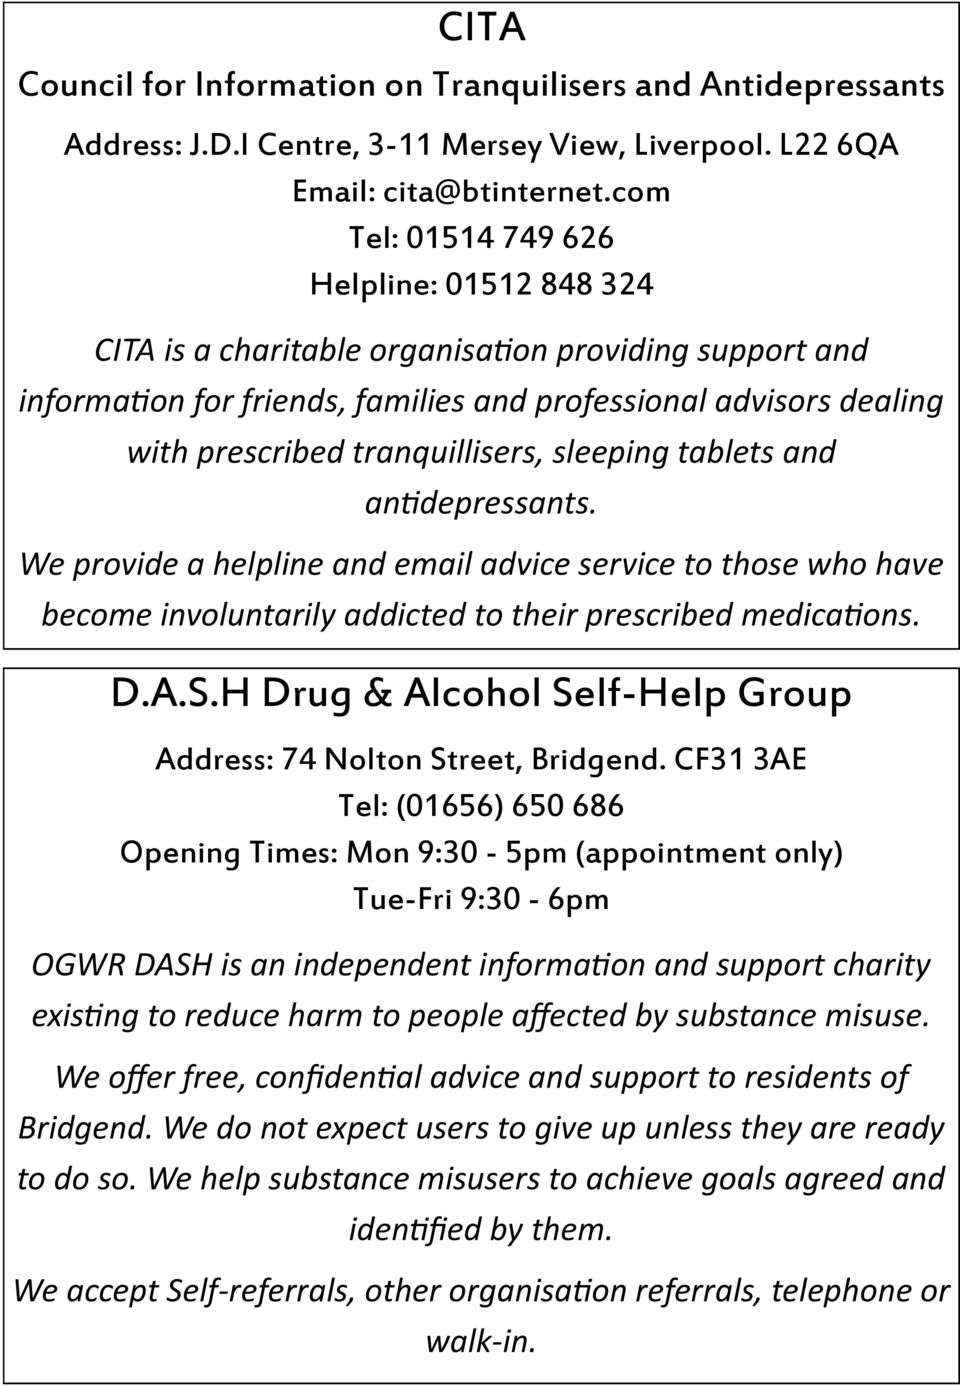 tranquillisers, sleeping tablets and antidepressants. We provide a helpline and email advice service to those who have become involuntarily addicted to their prescribed medications. D.A.S.